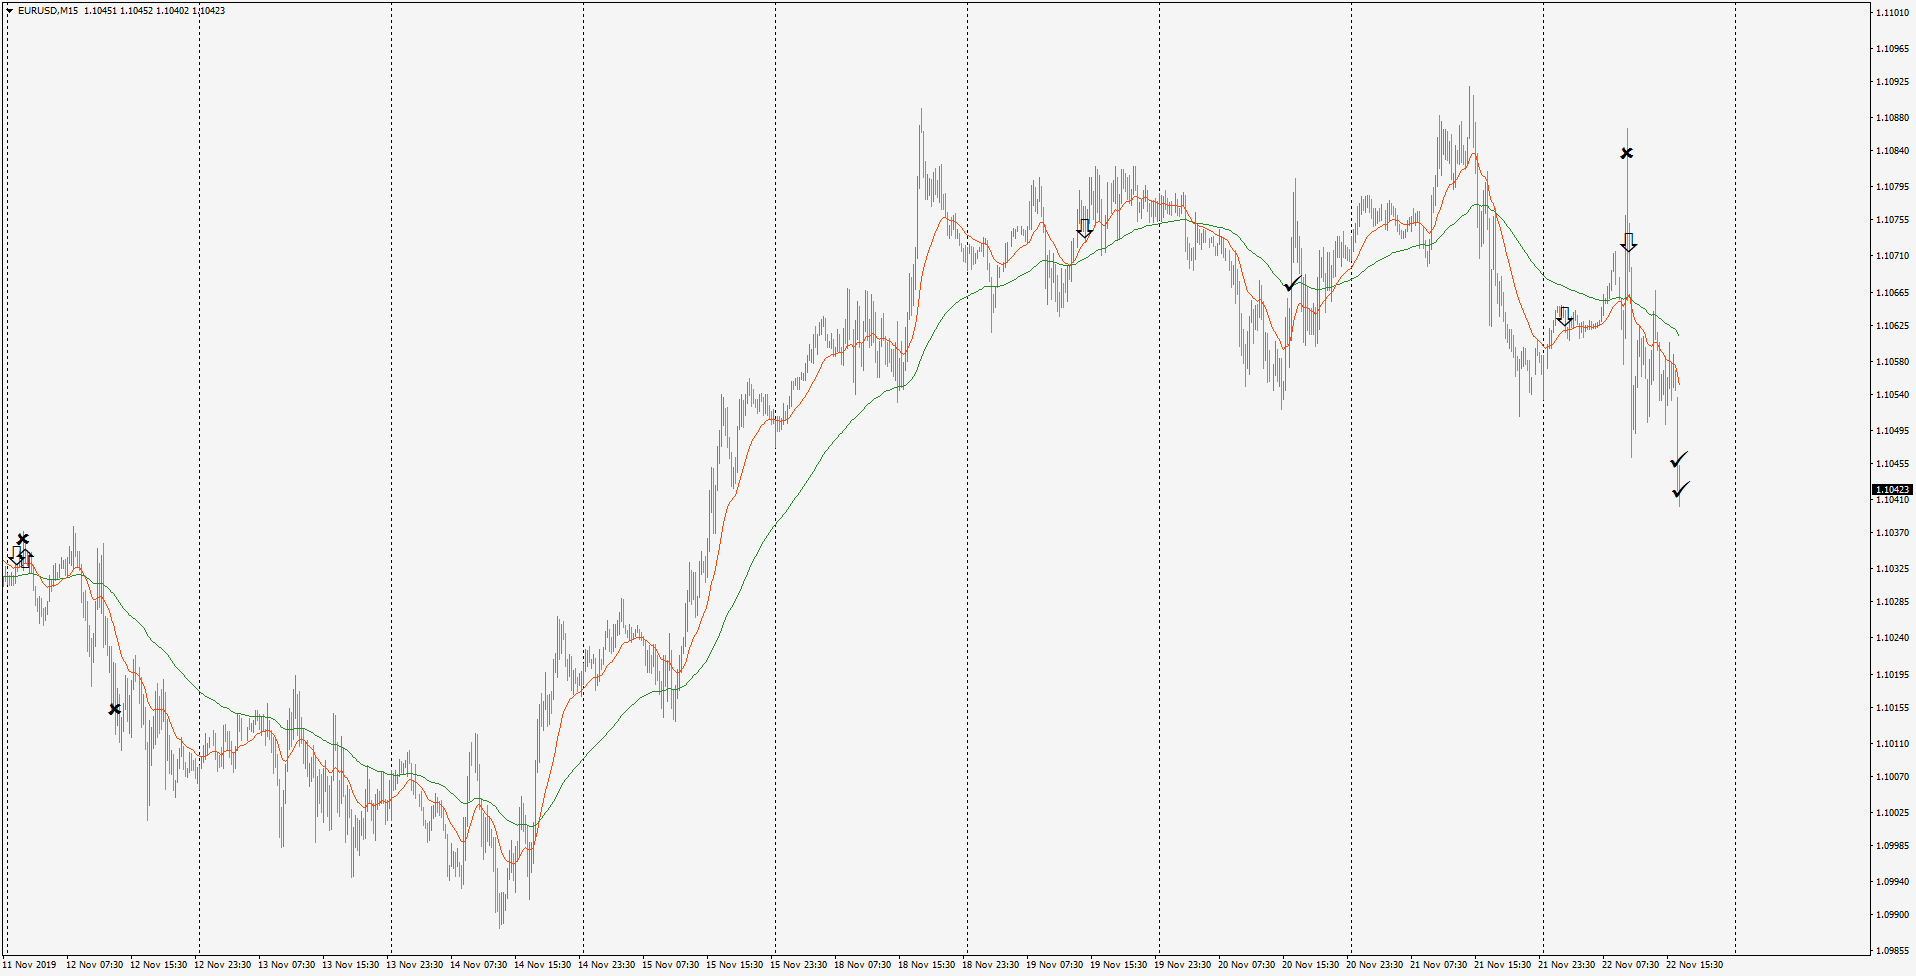 19-11-23-eurusd-m15-tradexfin-limited.png